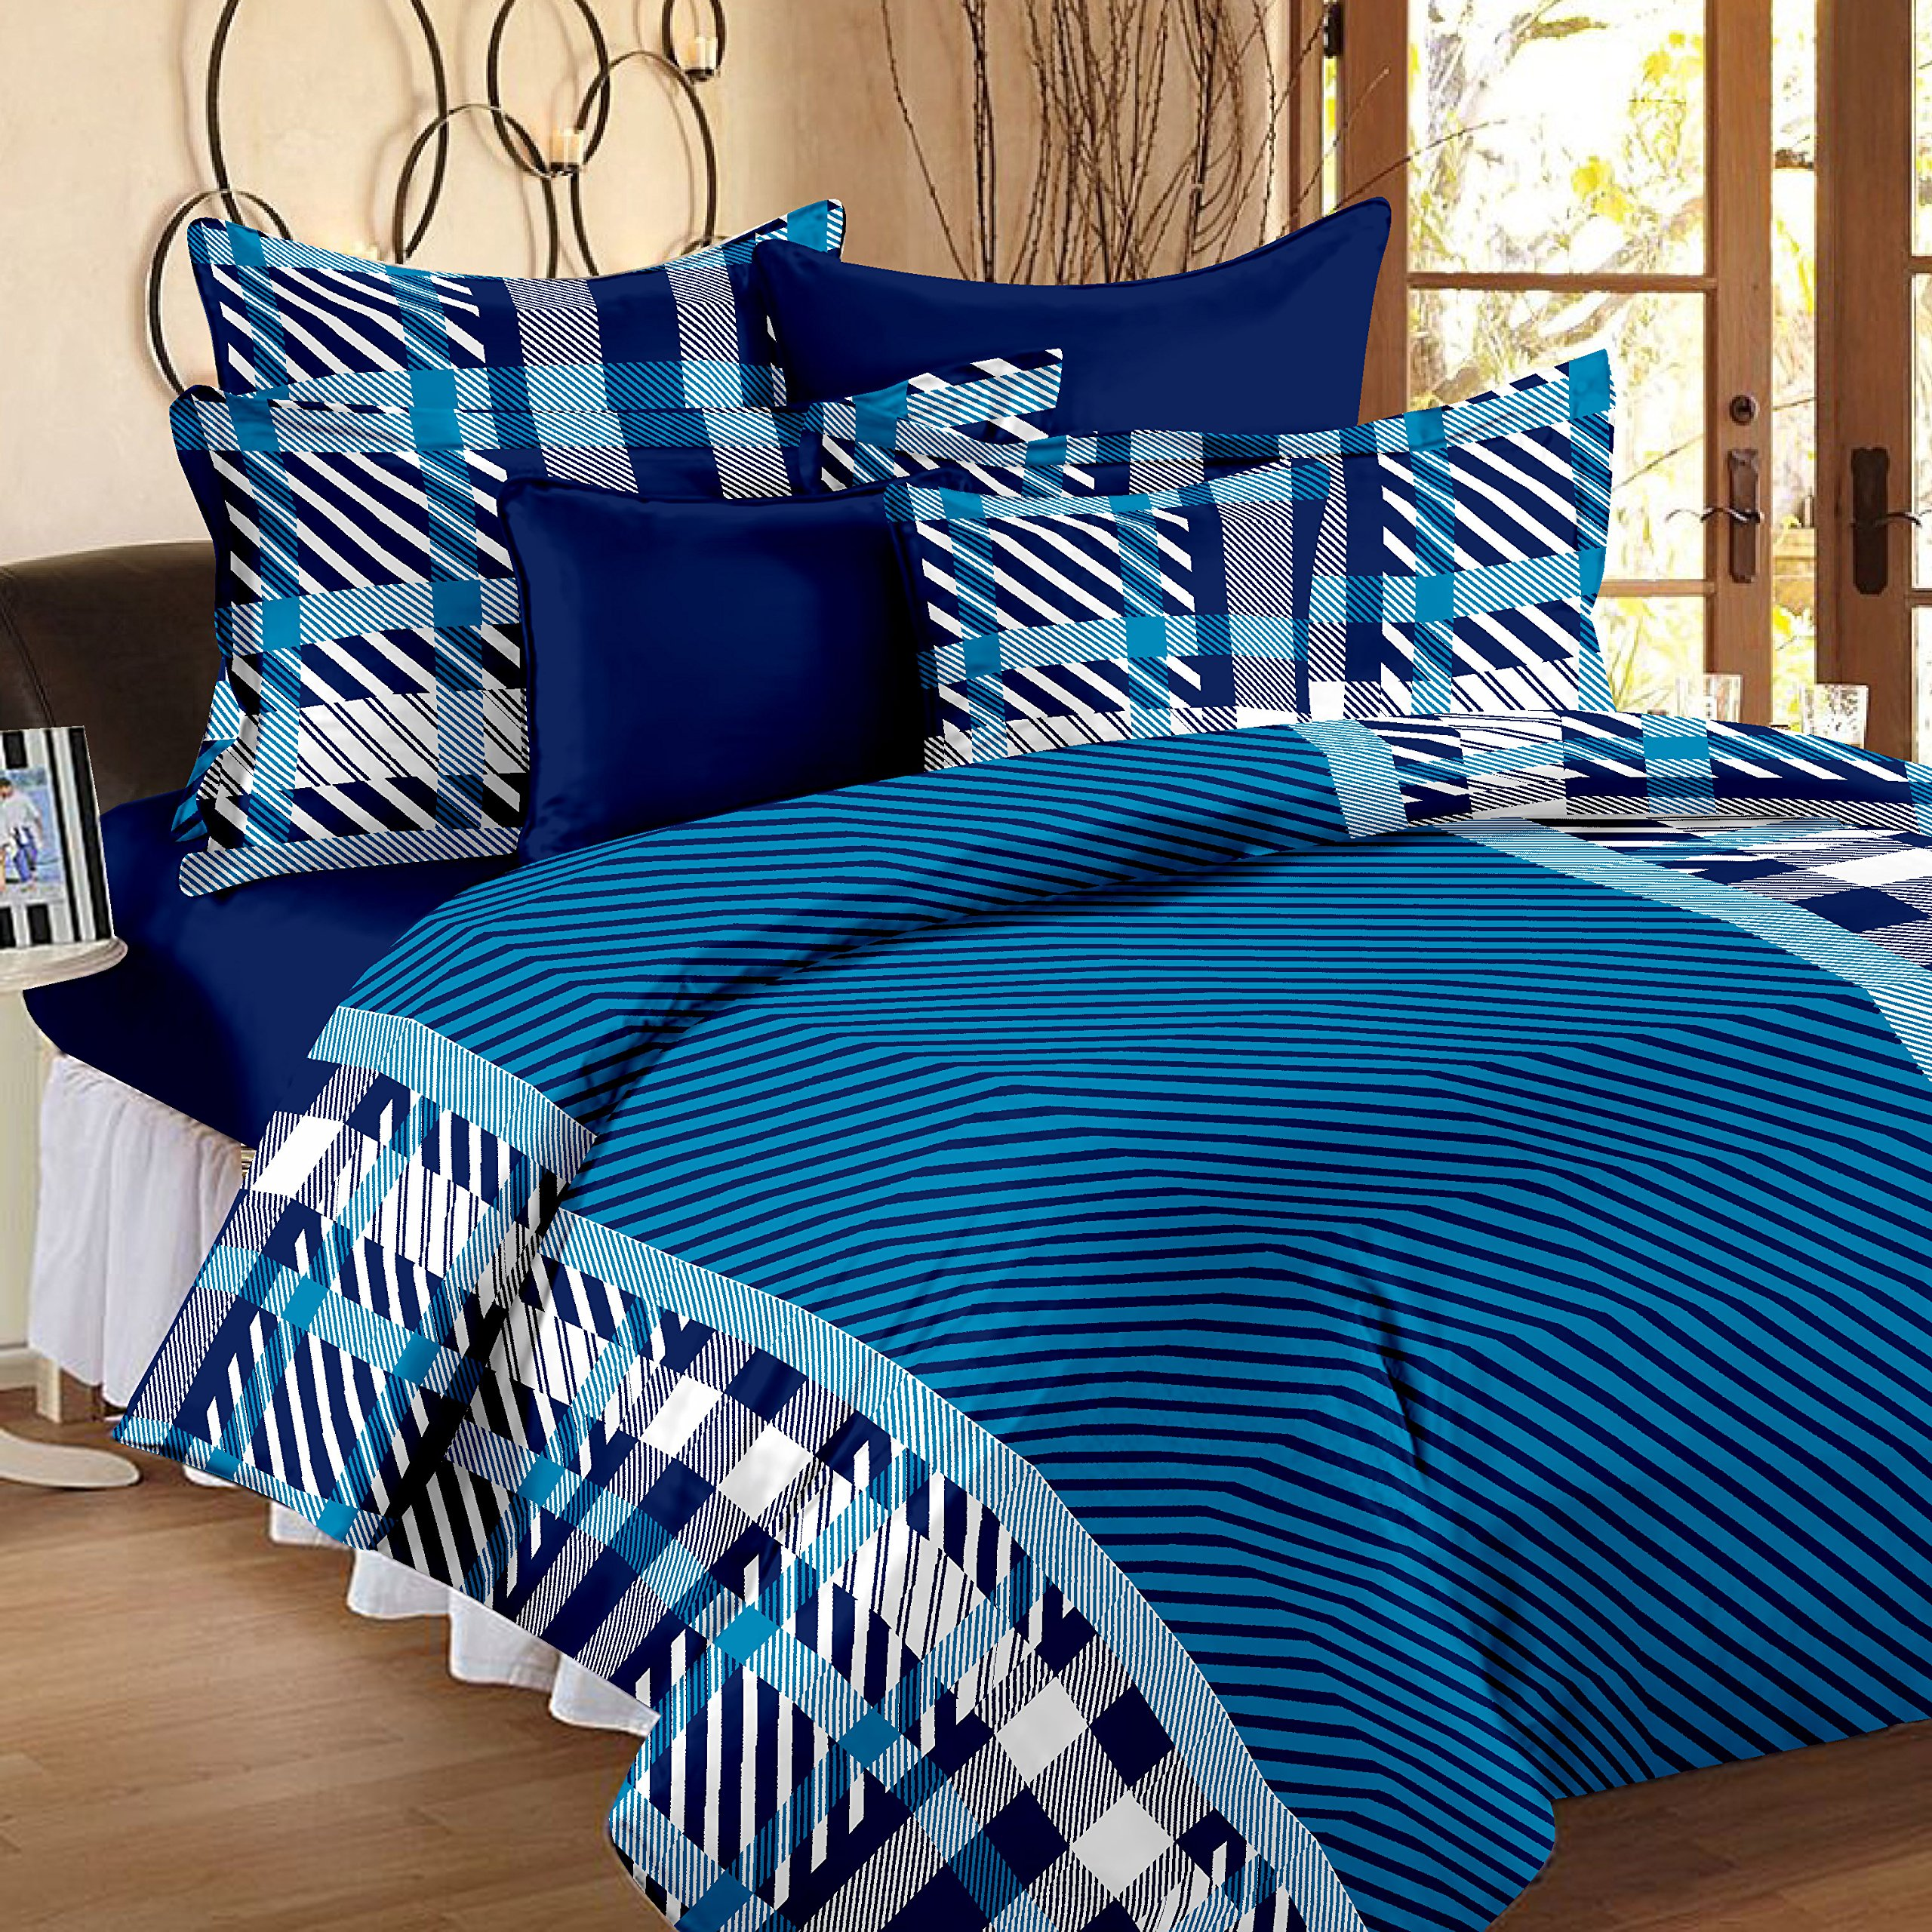 Buy Satin Bed Sheets Online India